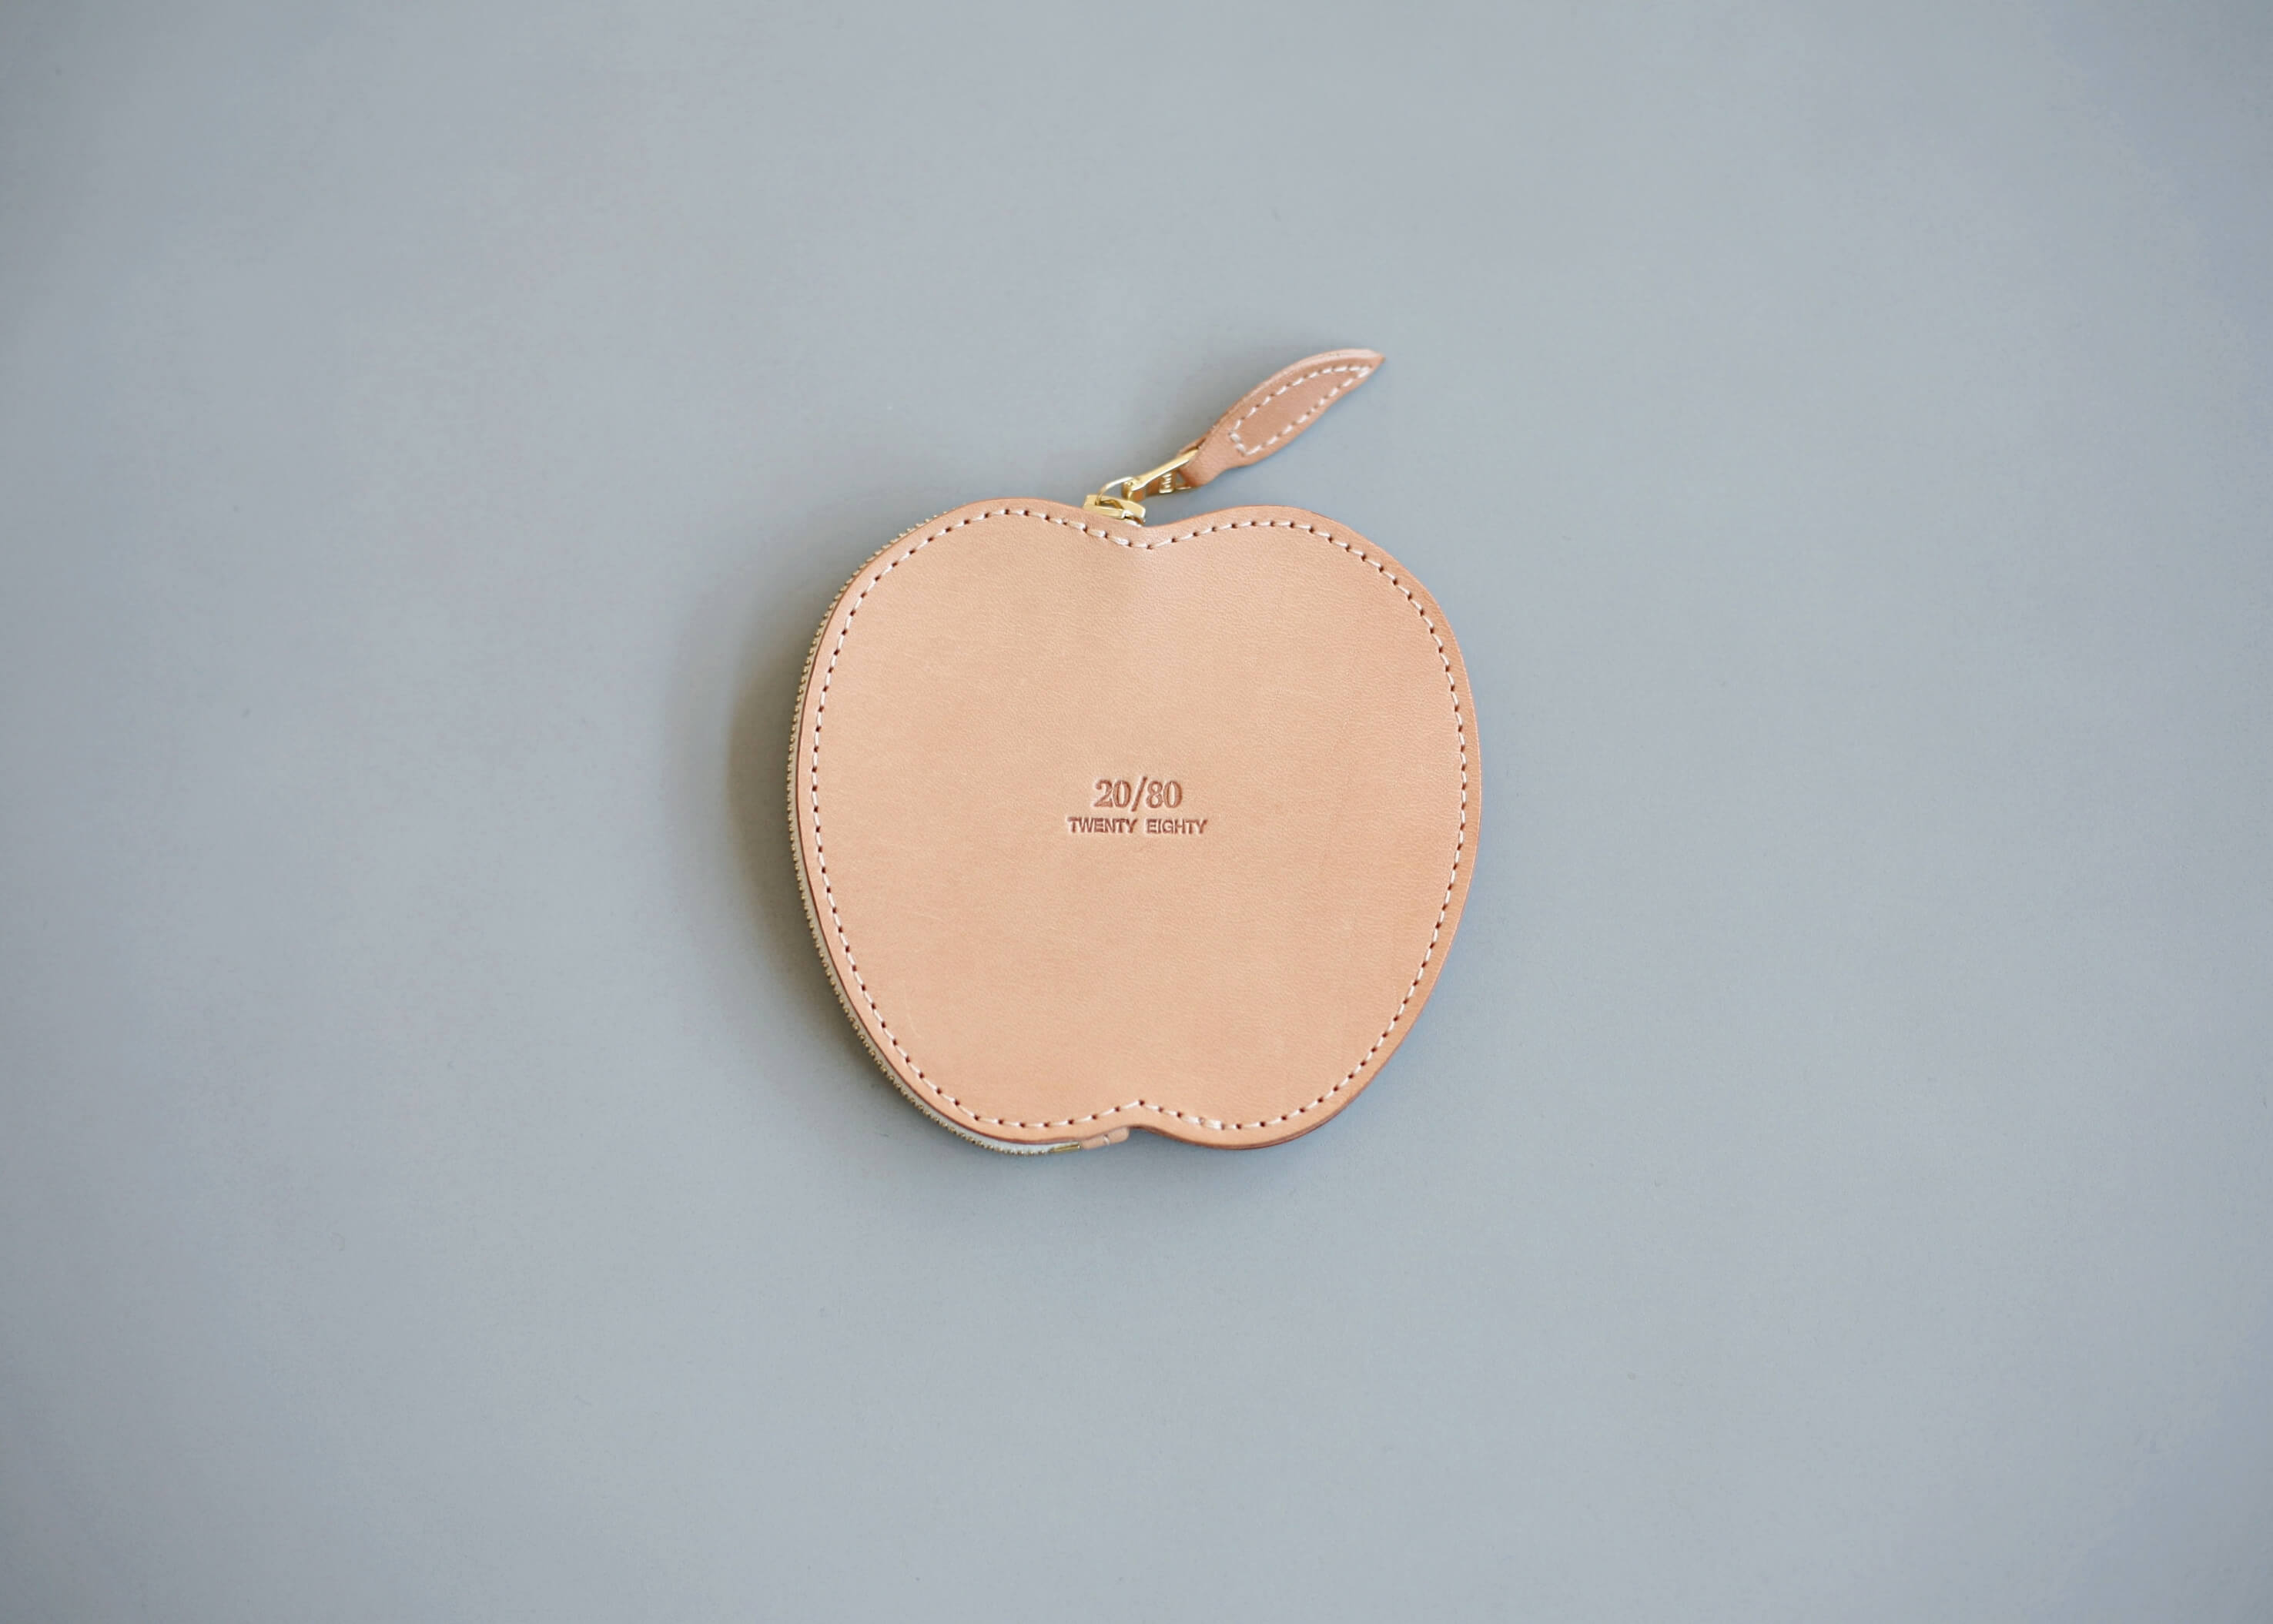 20/80 tochigi leather apple coin purse 裏の写真